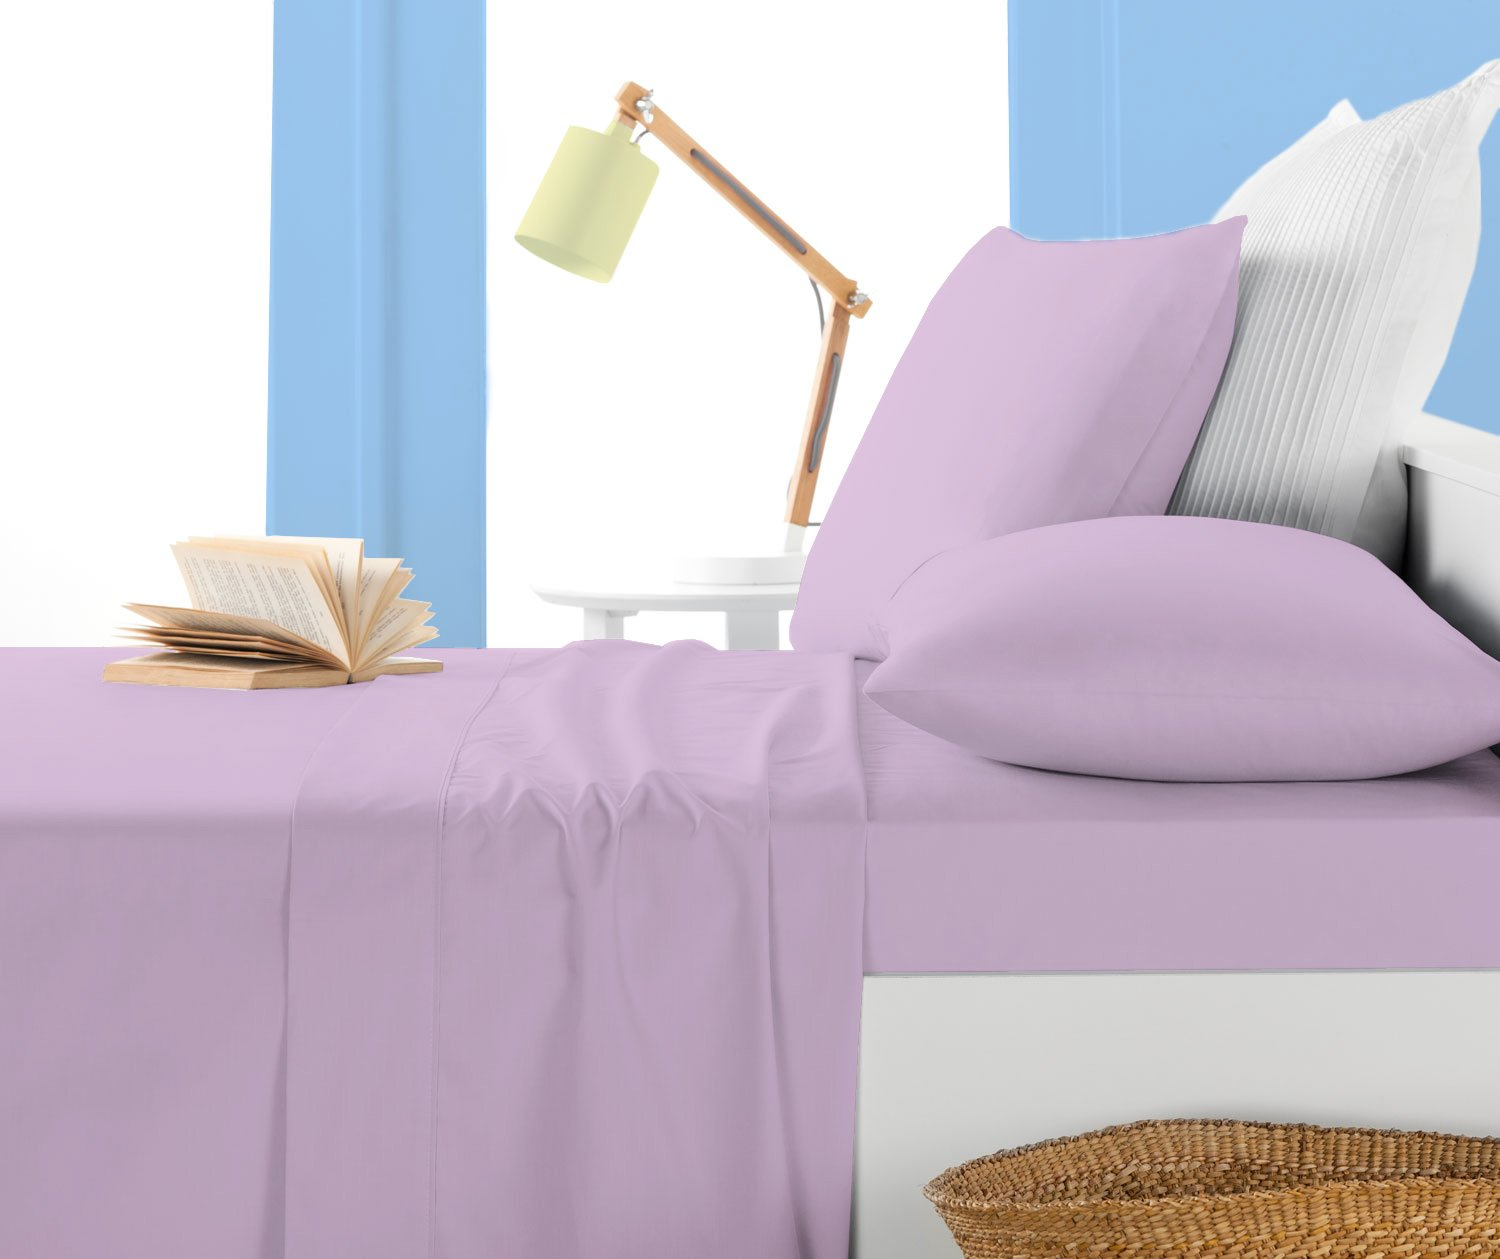 LACASA BEDDING 600 TC Pima Cotton Fitted sheet Italian Finish Solid ( Short Queen ,Lavender ) наволочка к детскому эргономическому матрасику cocoonababy s 3 fitted sheet s3 fdc powder blue